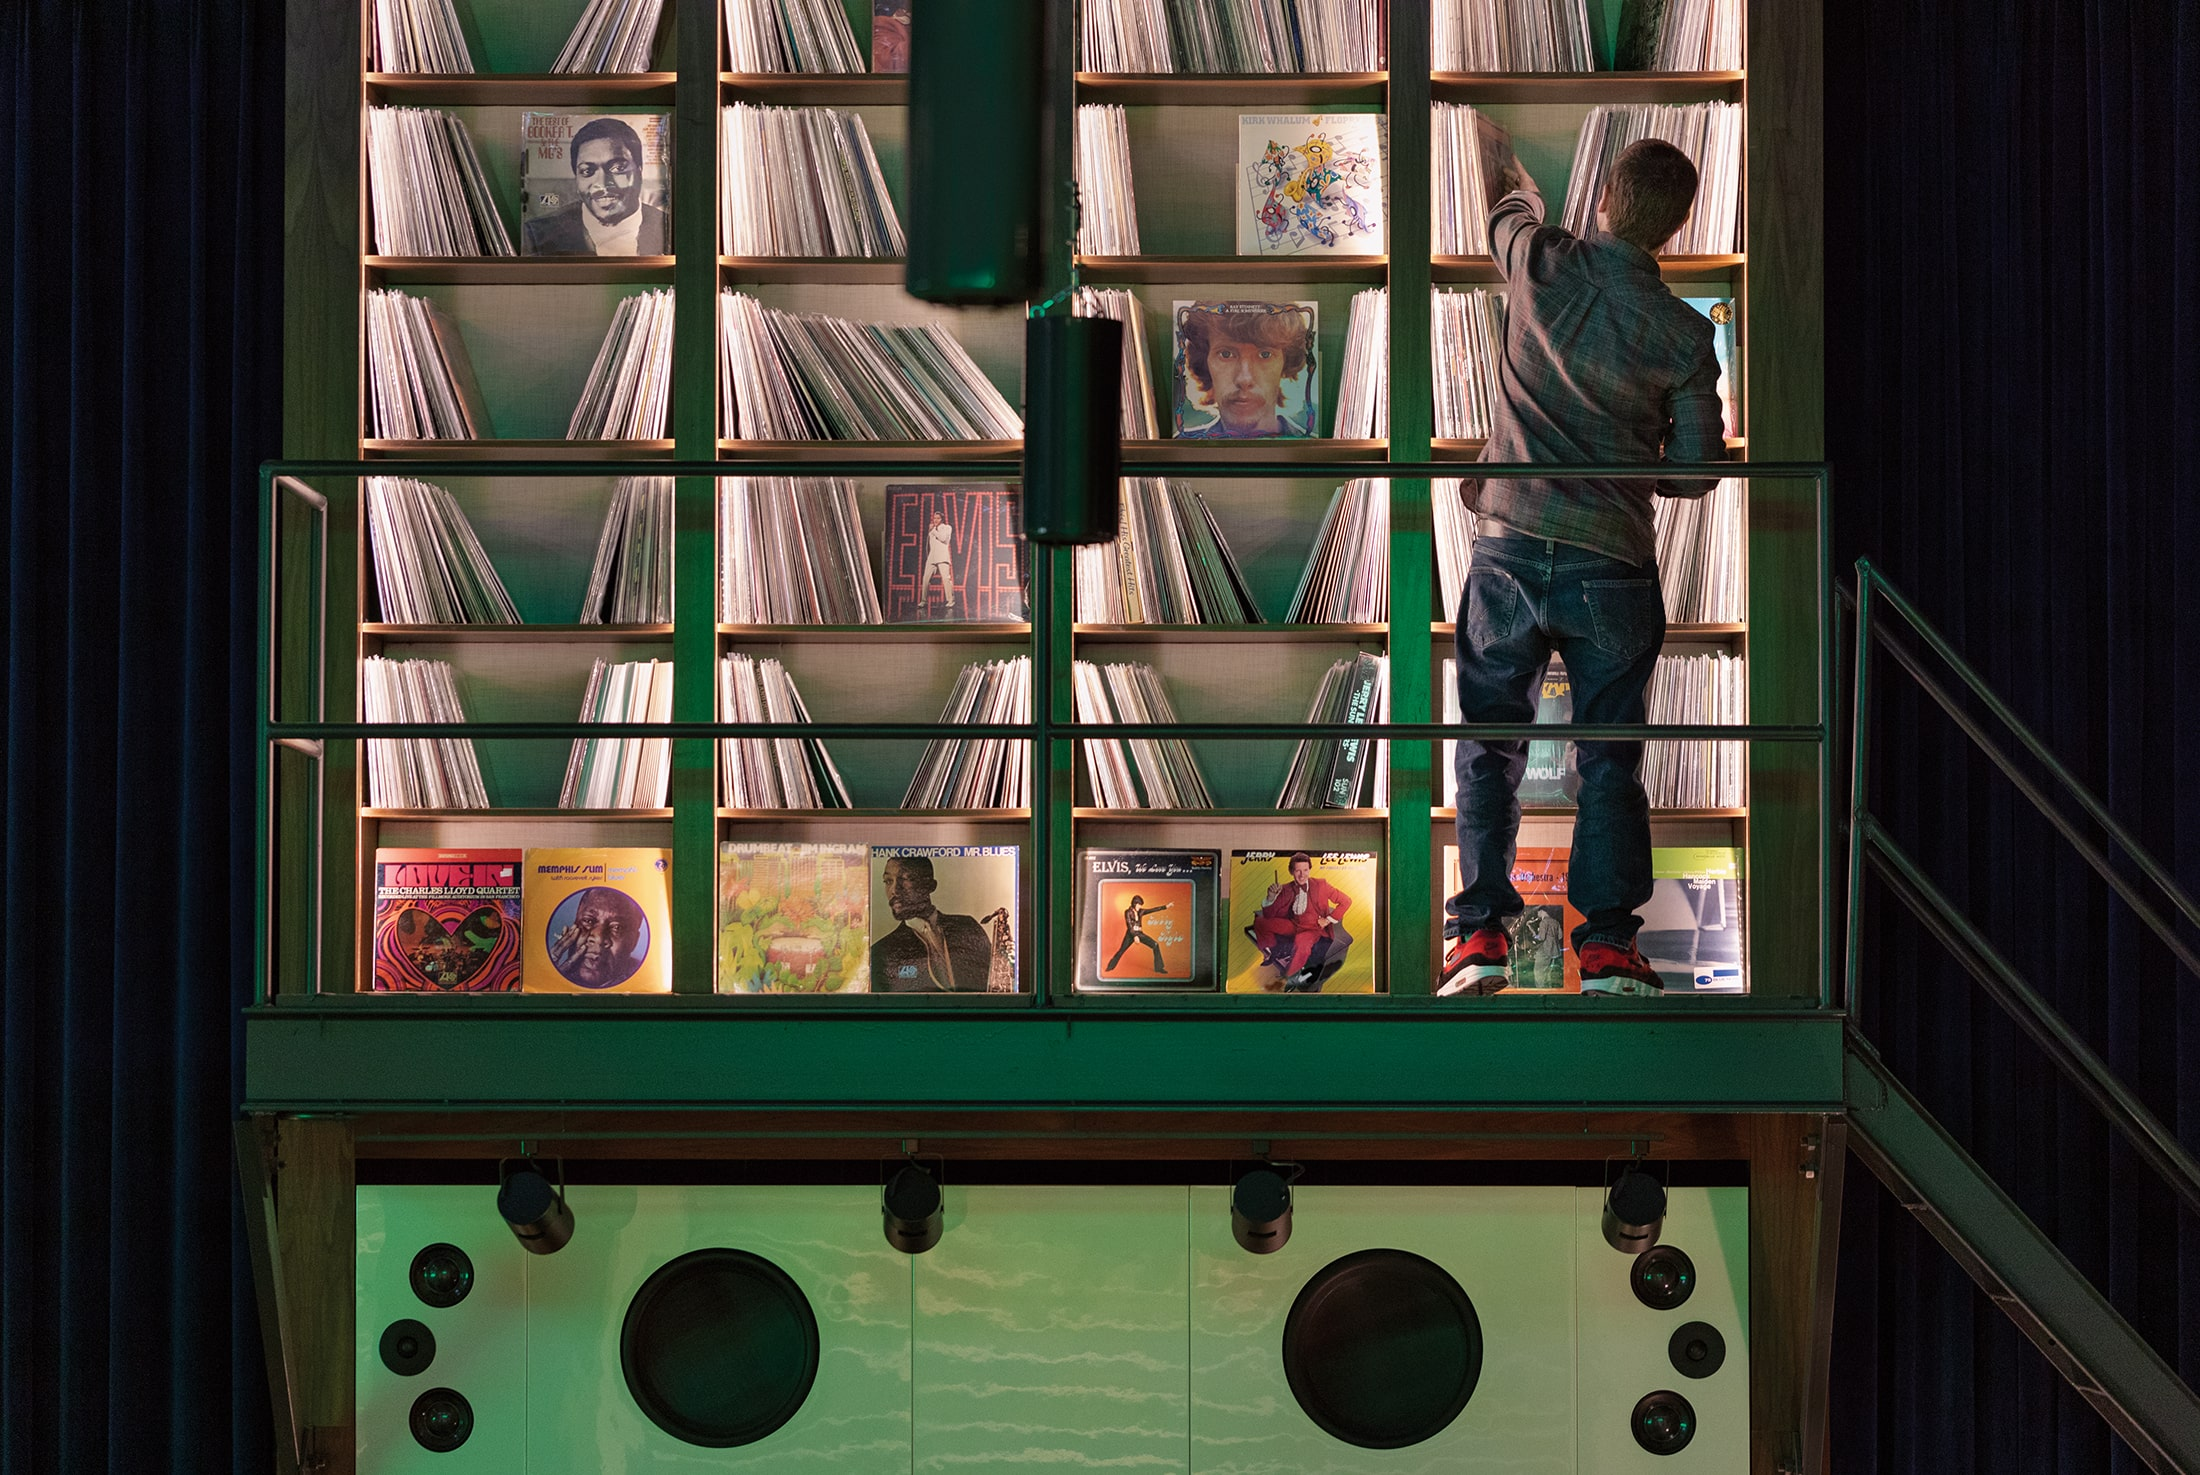 Indoor record collection at The Central Station